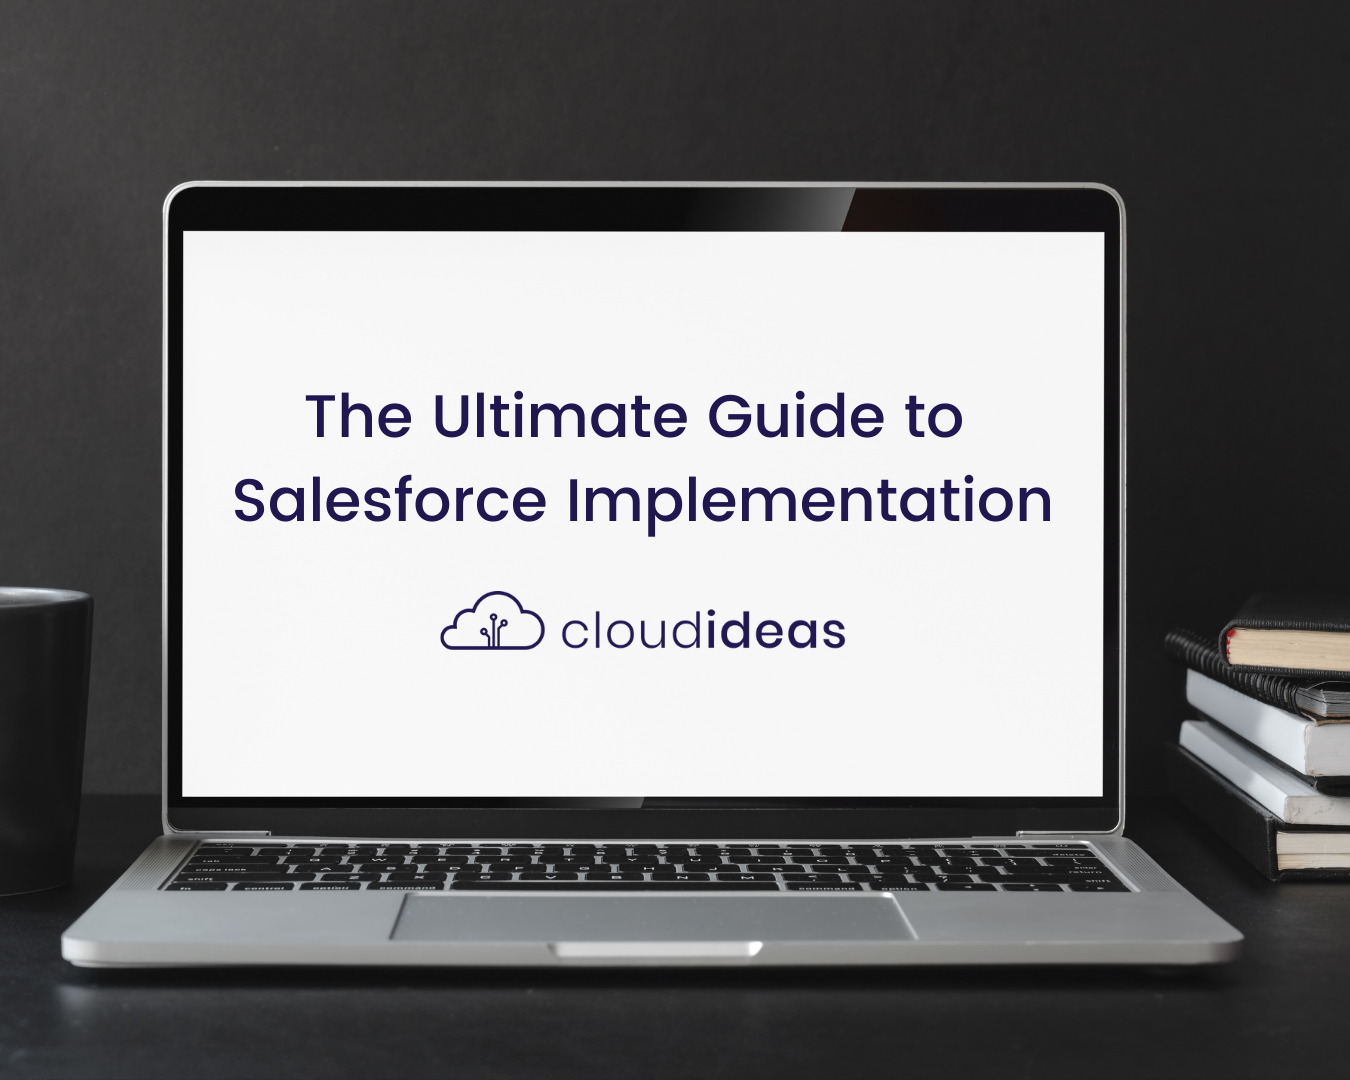 The Ultimate Guide to Salesforce Implementation in 2021